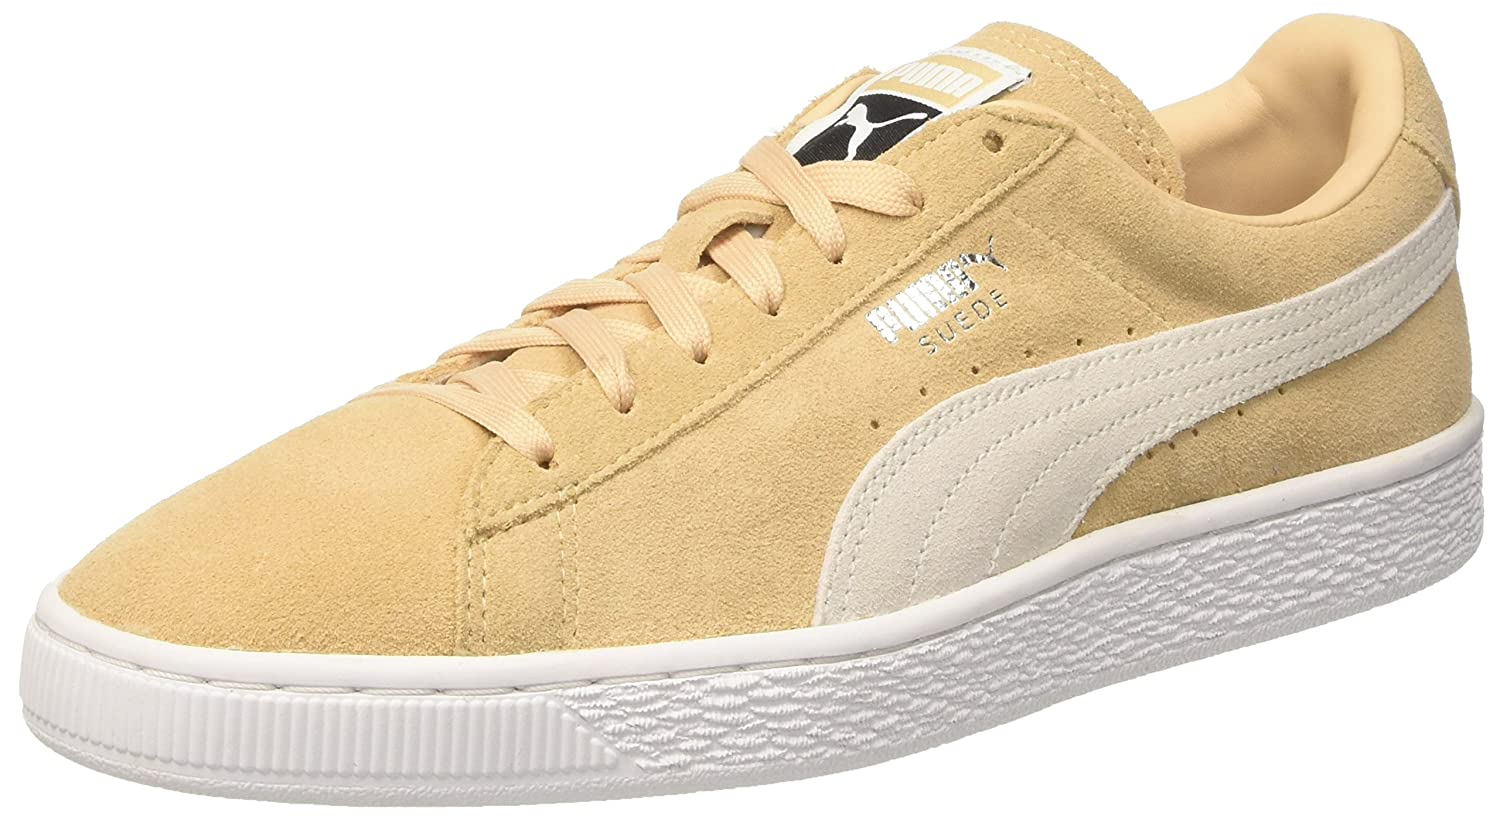 Puma Suede Classic Plus for WomenMen Agave Green Puma White 363242 07 Puma, Puma Men, Puma Suede, Puma Women